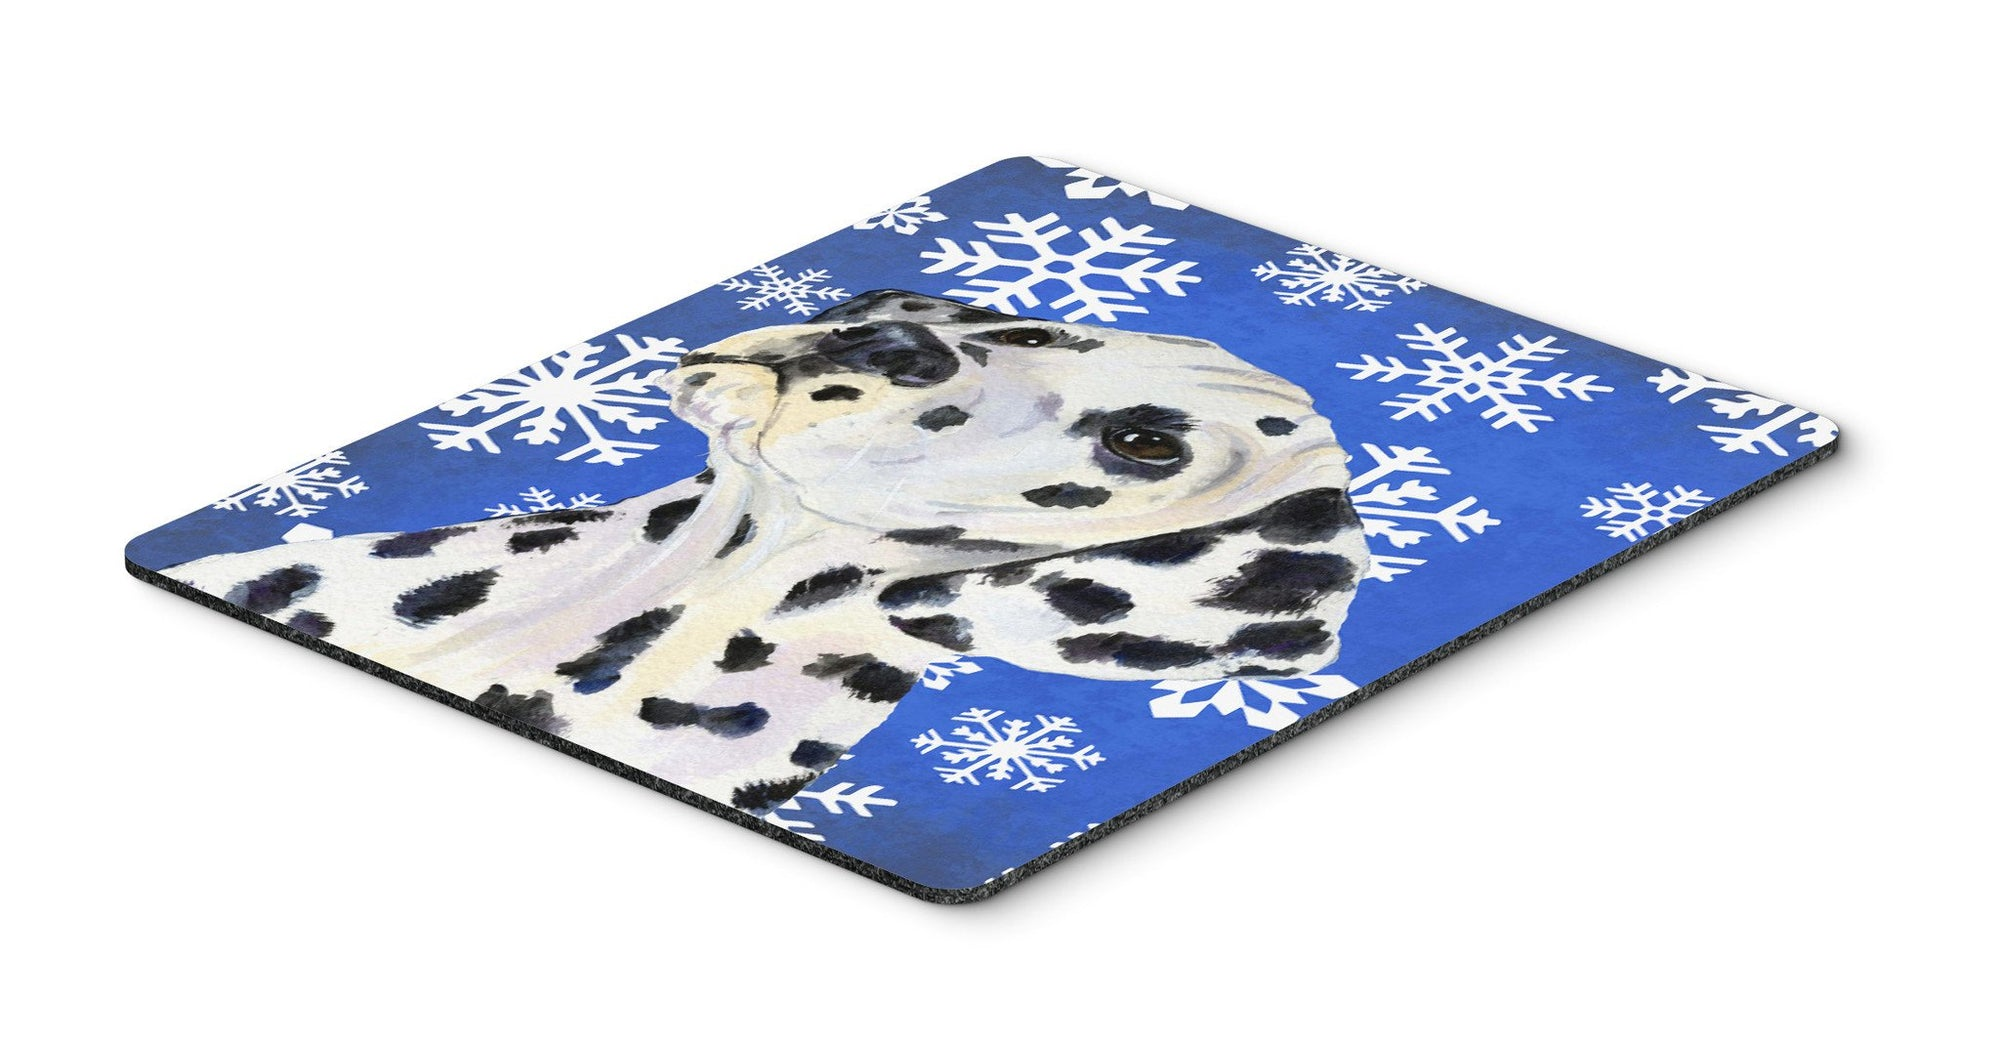 Dalmatian Winter Snowflakes Holiday Mouse Pad, Hot Pad or Trivet by Caroline's Treasures